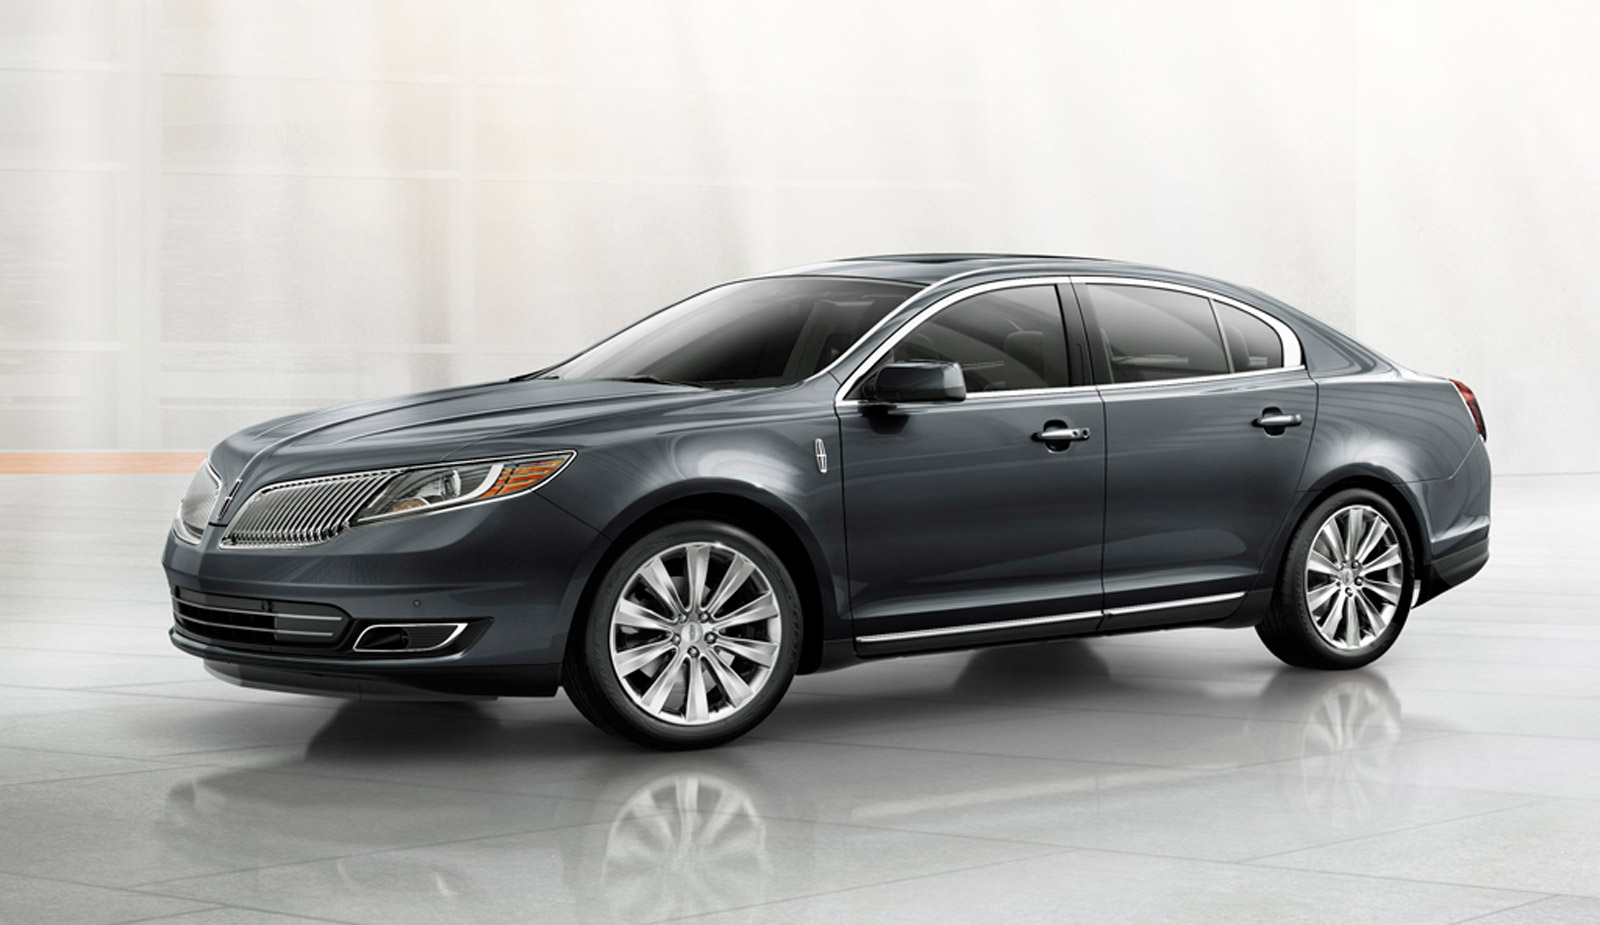 mkx mks lincoln cargurus cars pic overview